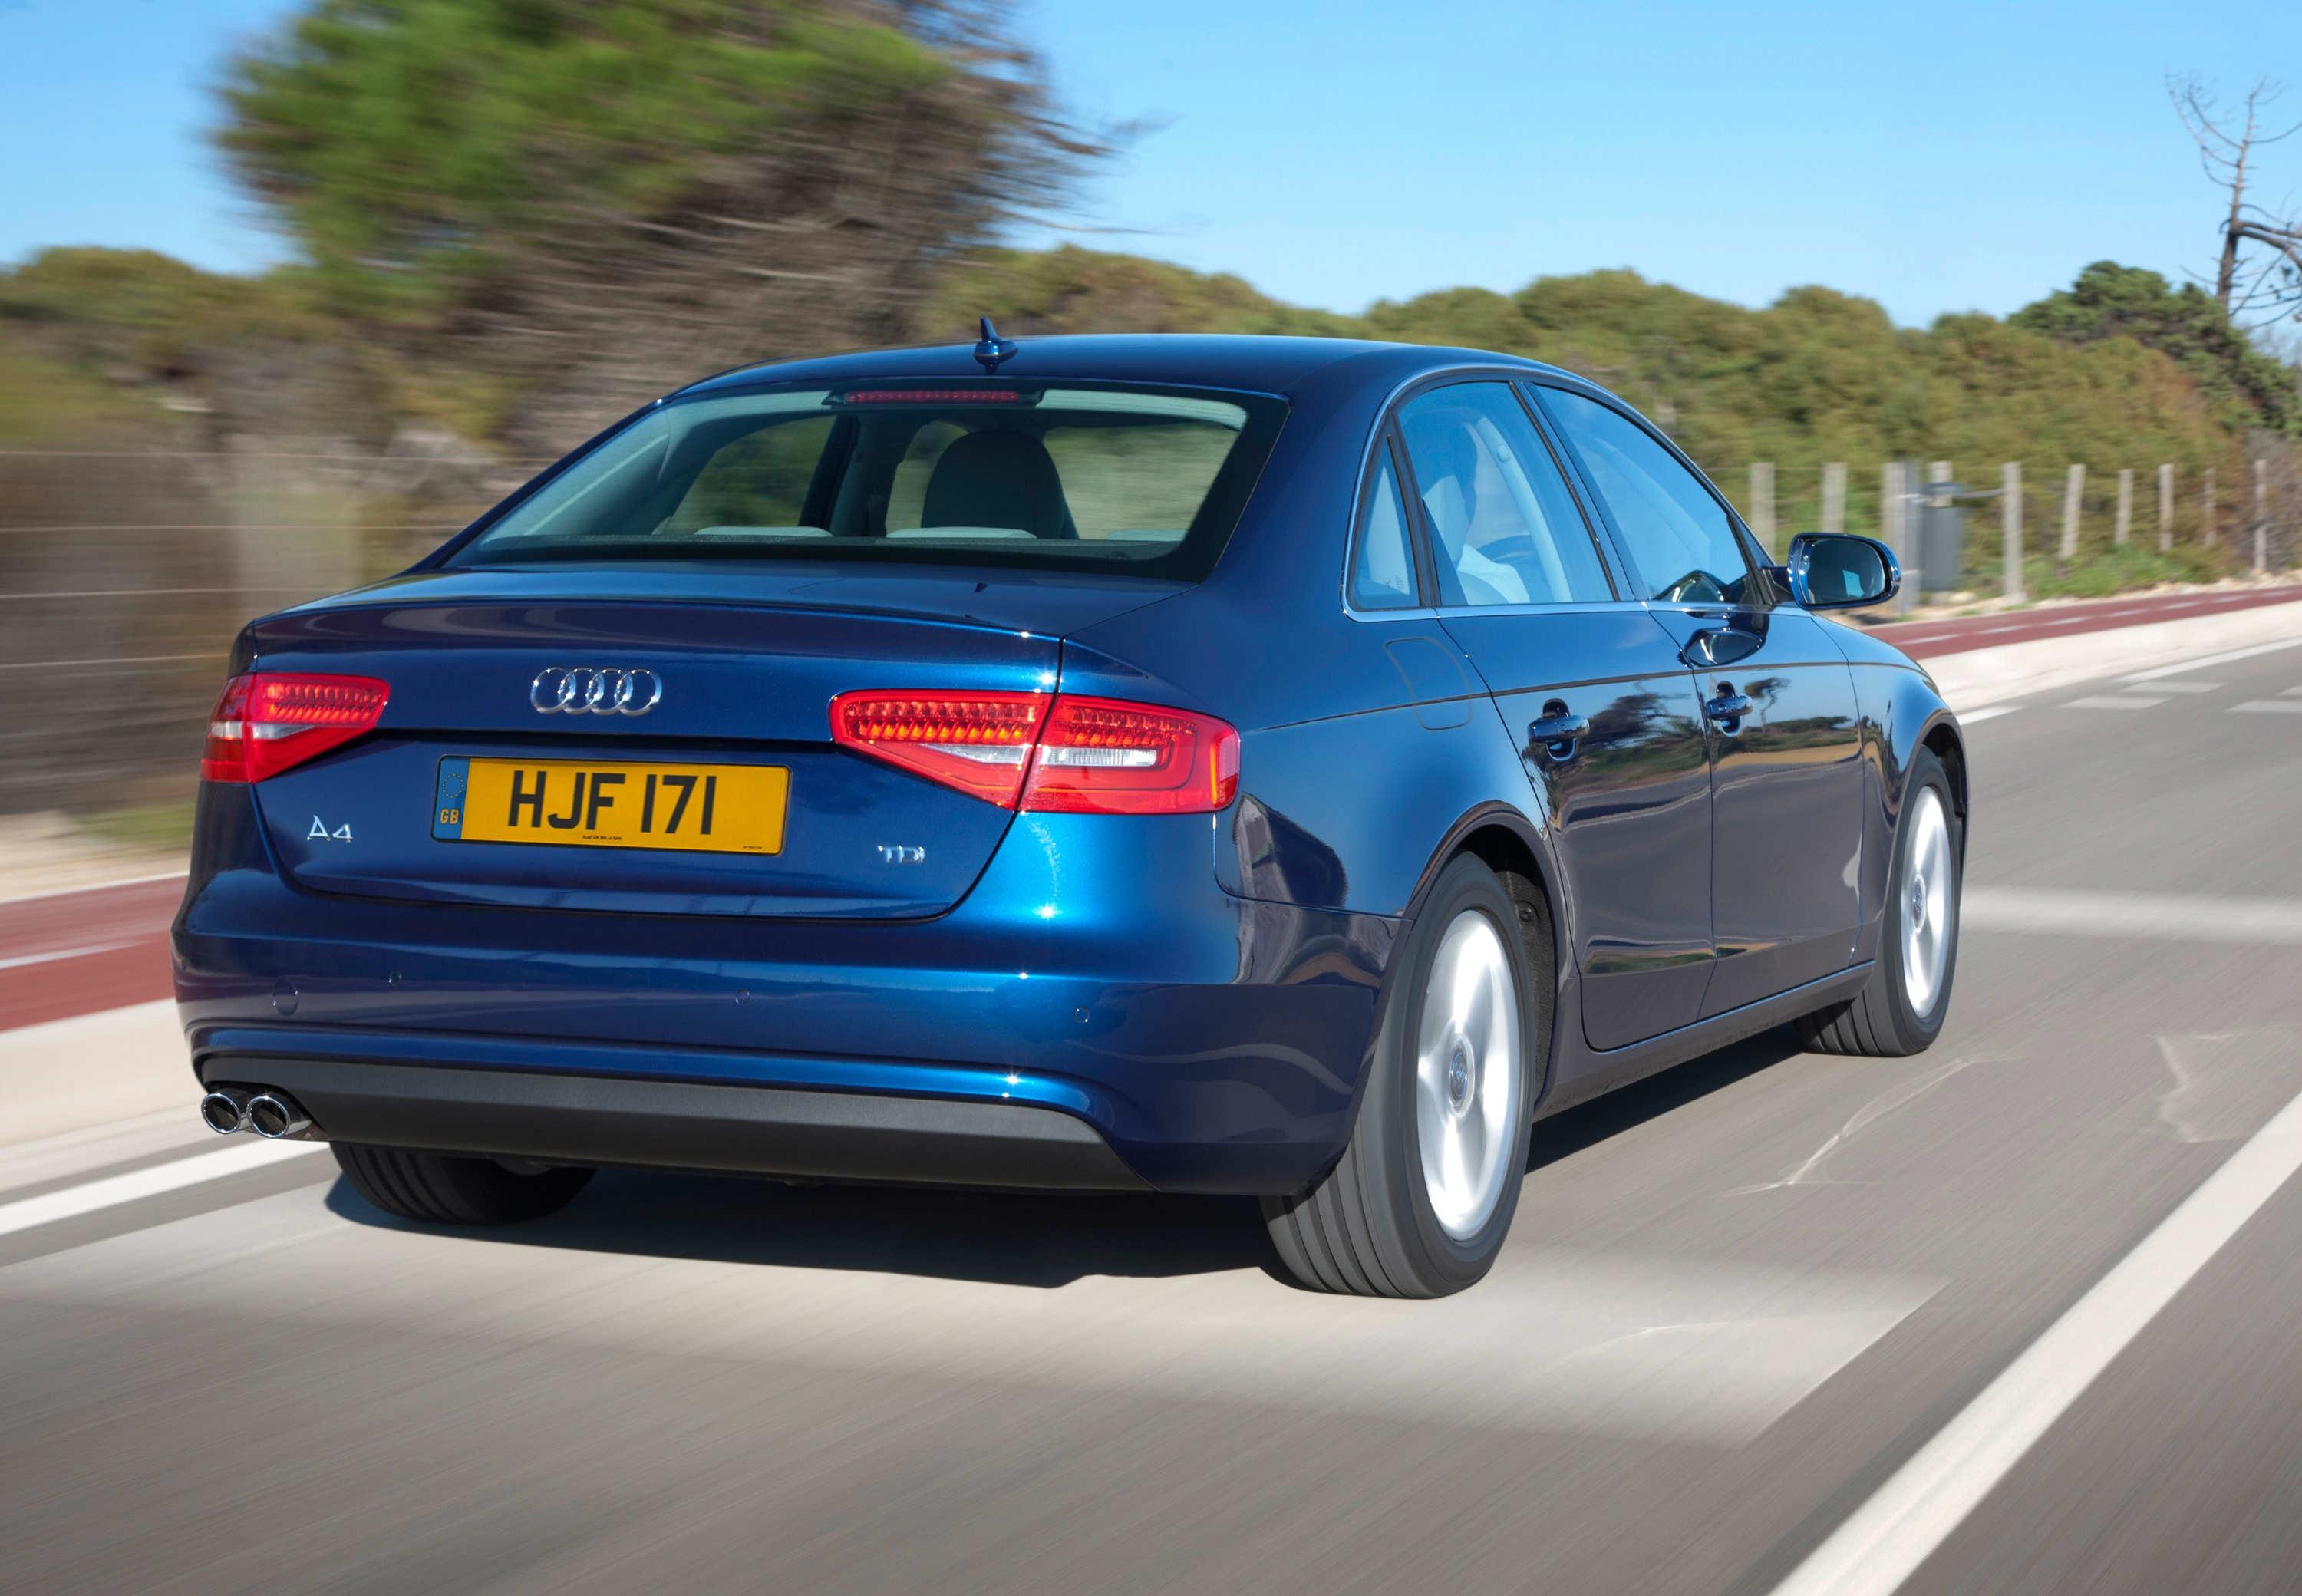 Audi A4 rear view in blue